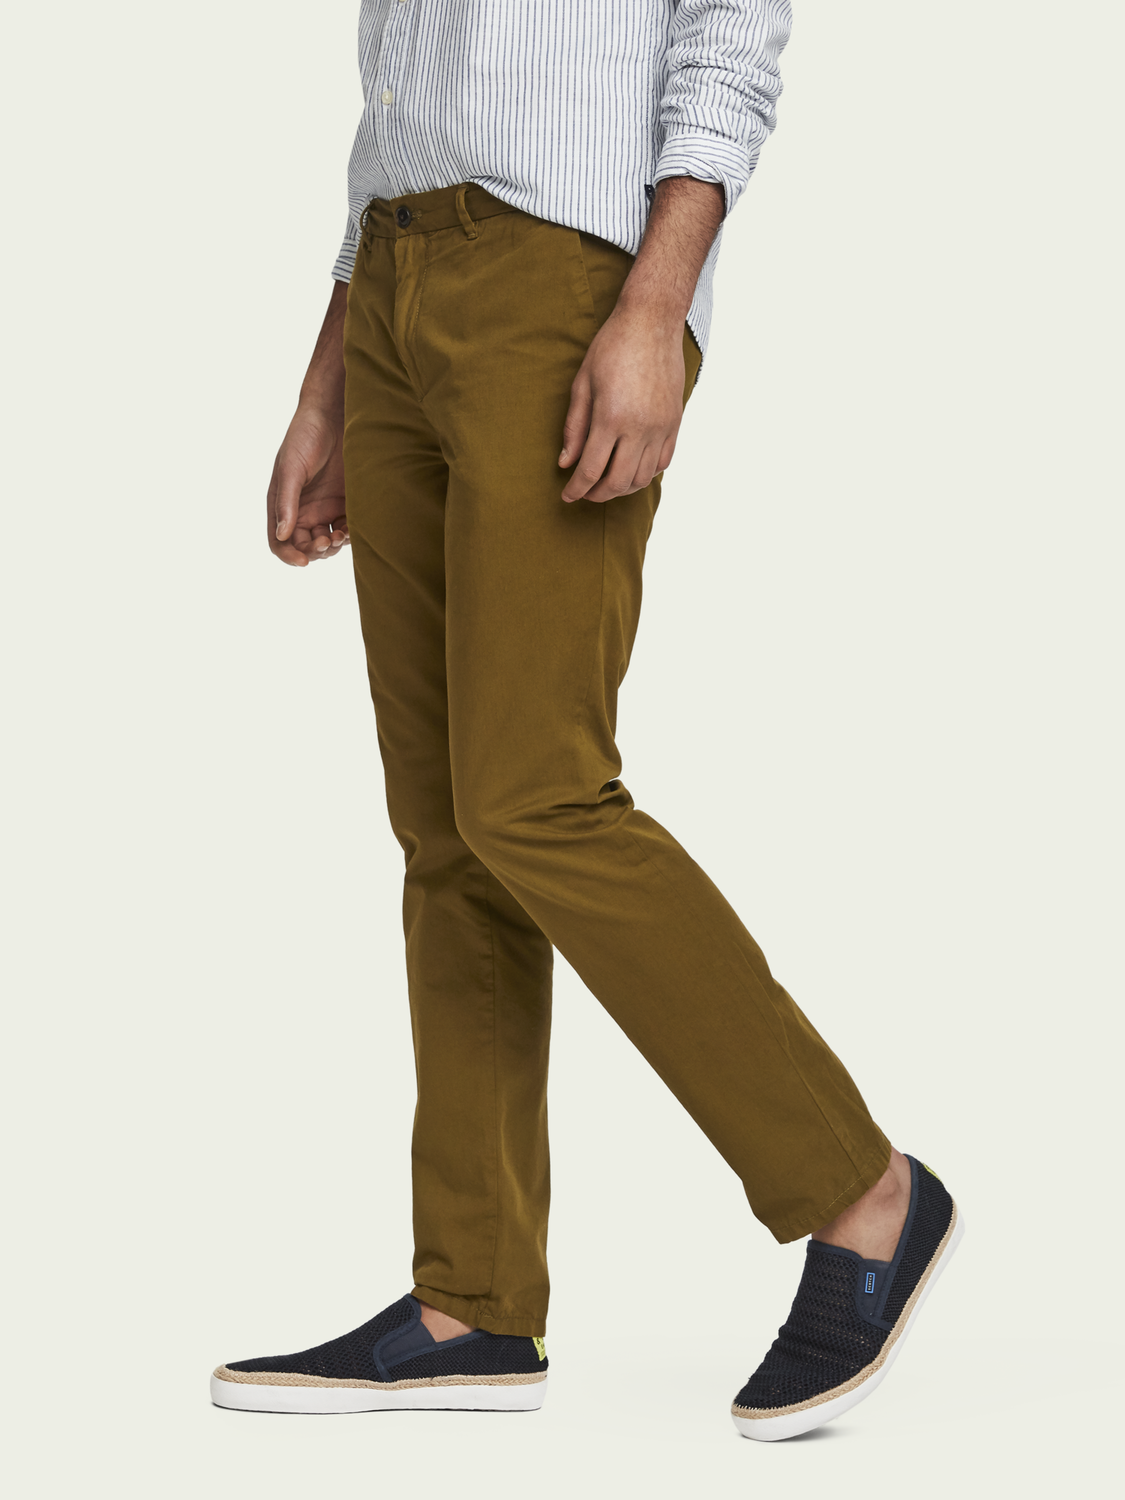 Men Mott - Pima cotton chinos | Super slim fit